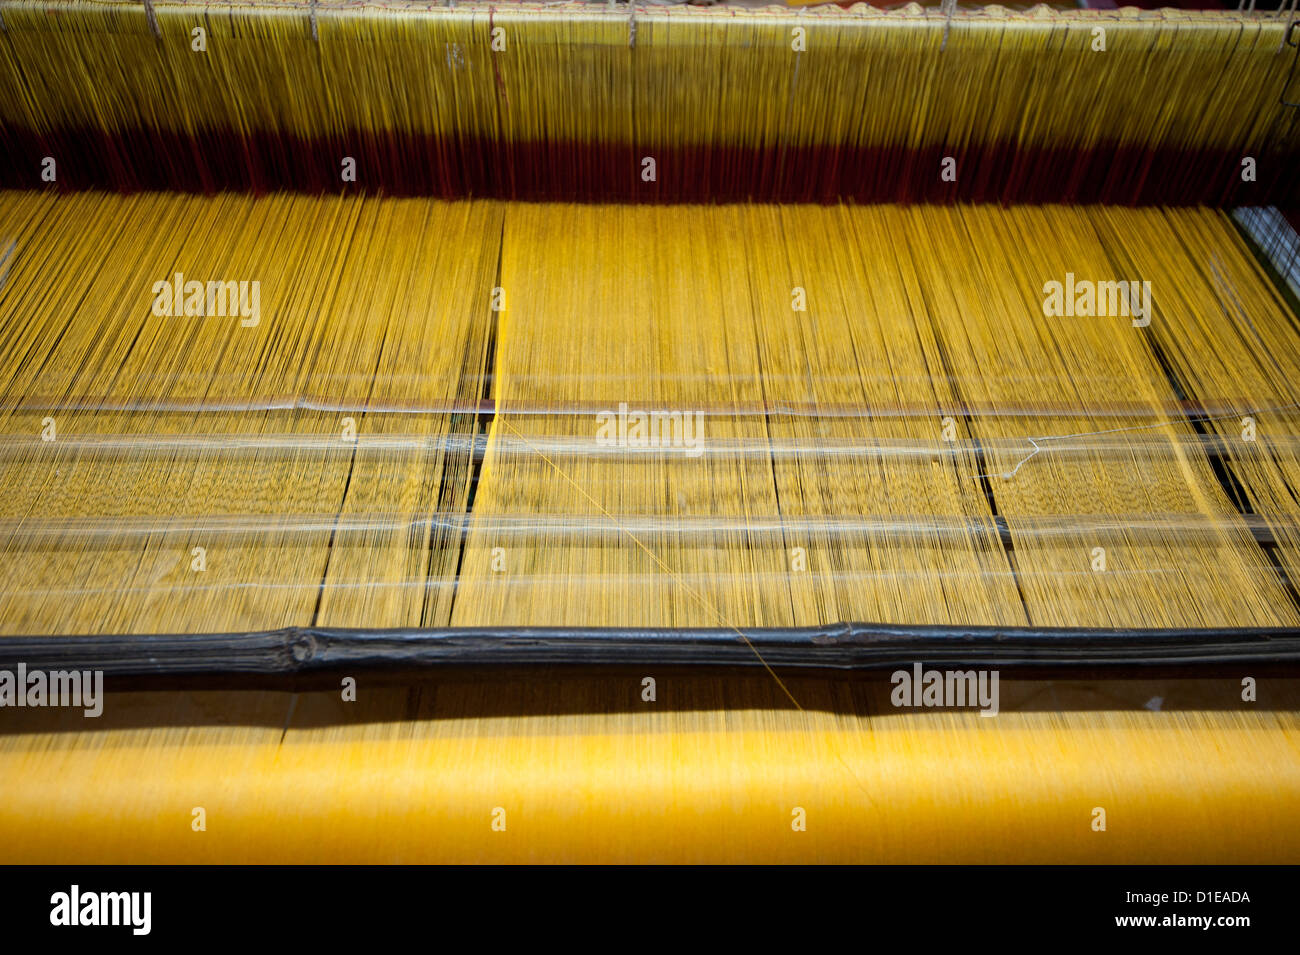 Yellow dyed silk being woven on loom, Naupatana weaving village, rural Orissa, India, Asia - Stock Image